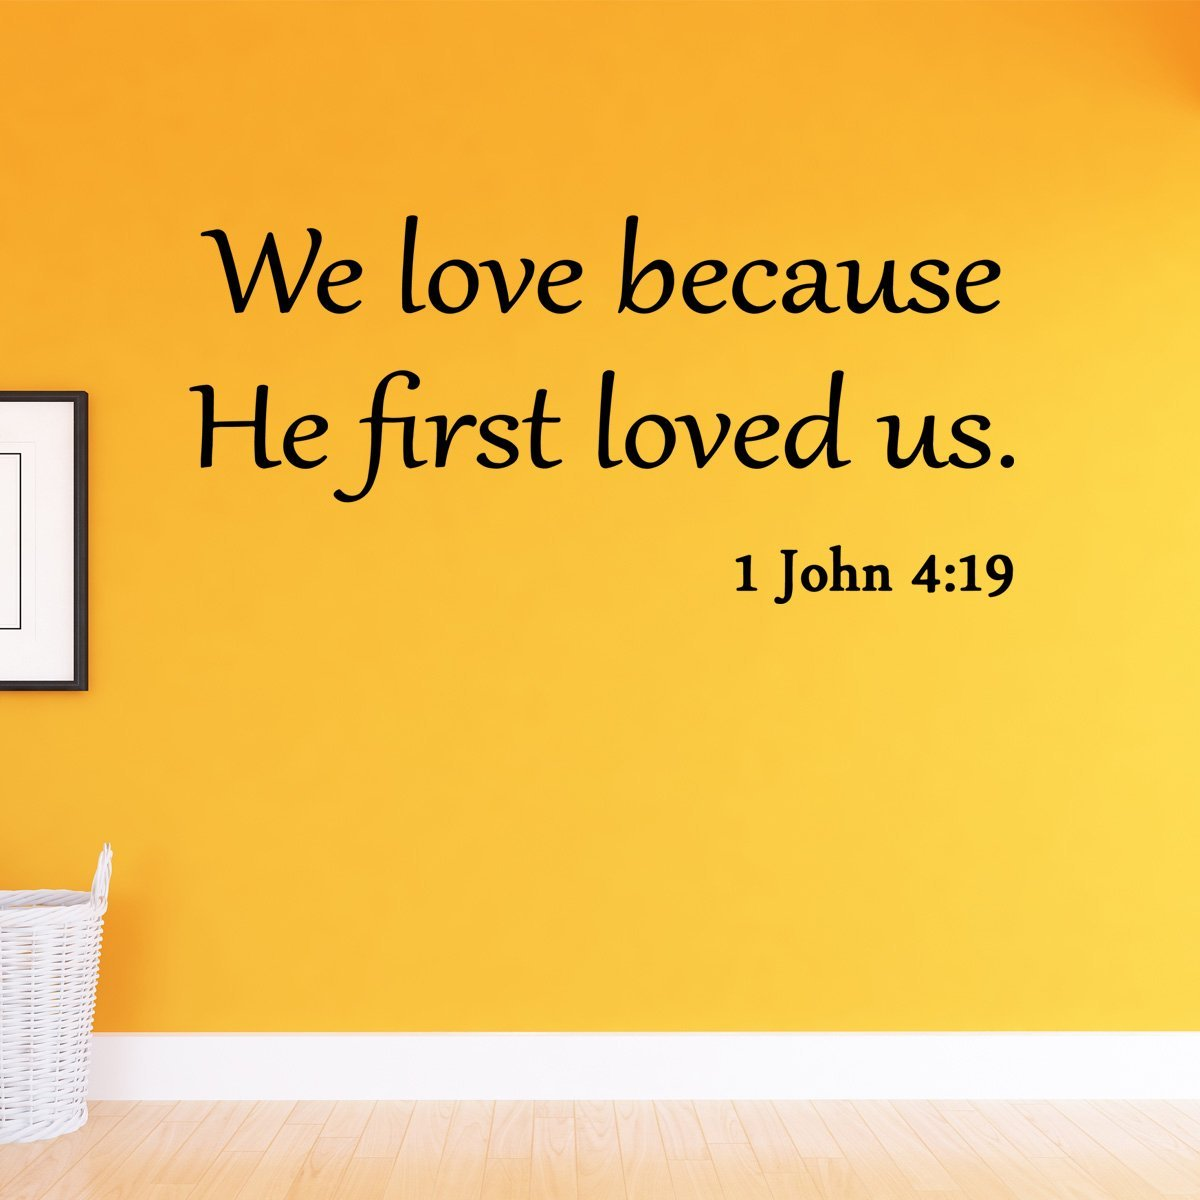 VWAQ We Love Because He First Loved Us 1 John 4:19 Bible Wall Decal - VWAQ Vinyl Wall Art Quotes and Prints